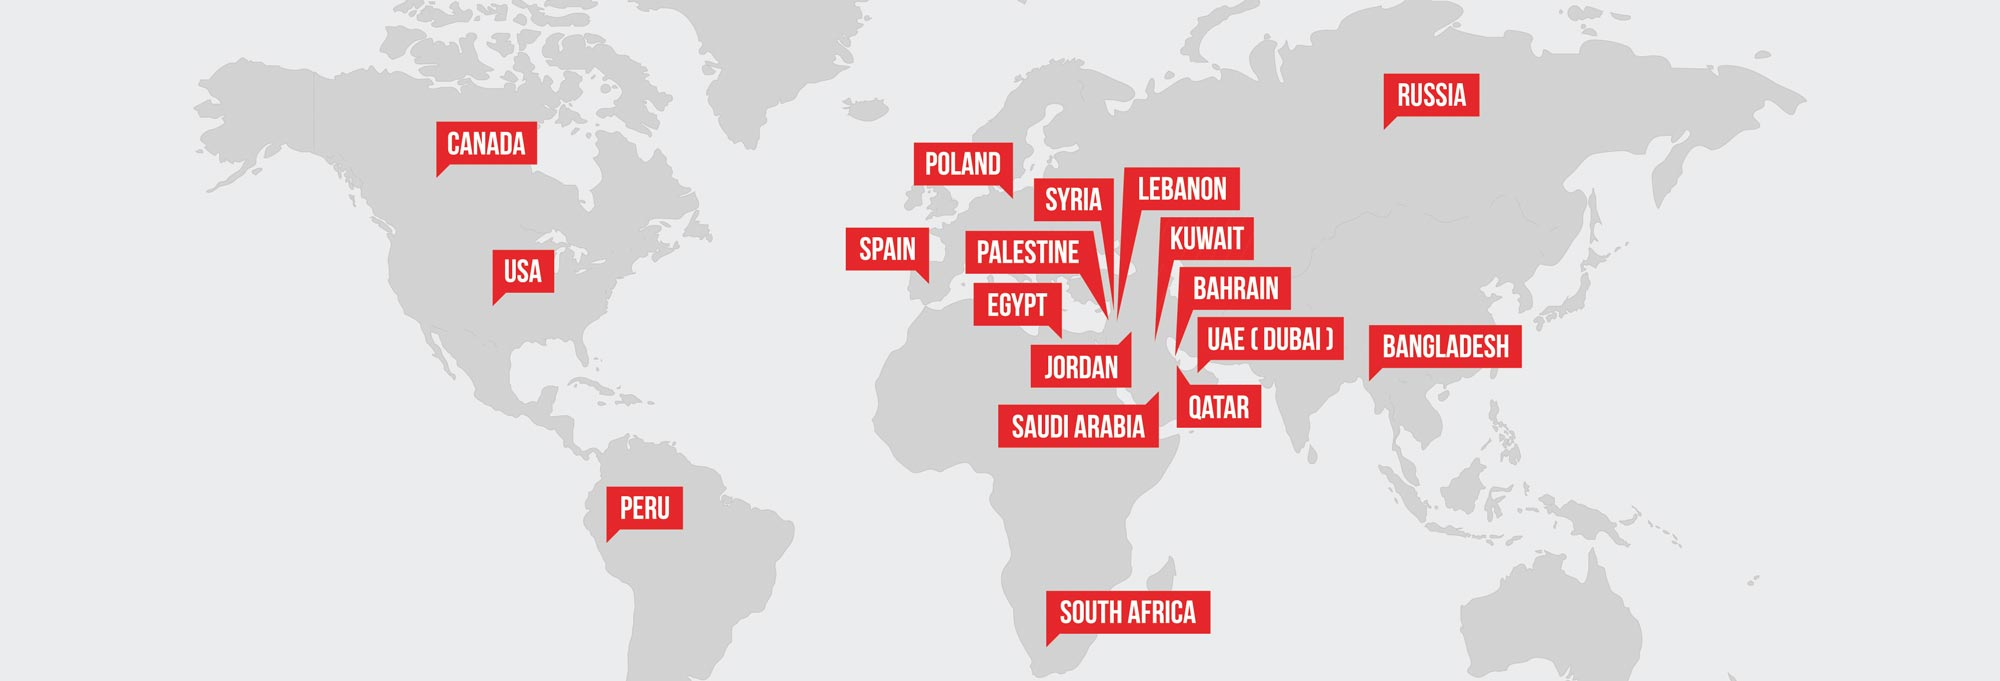 Ammar machinery customers around the globe